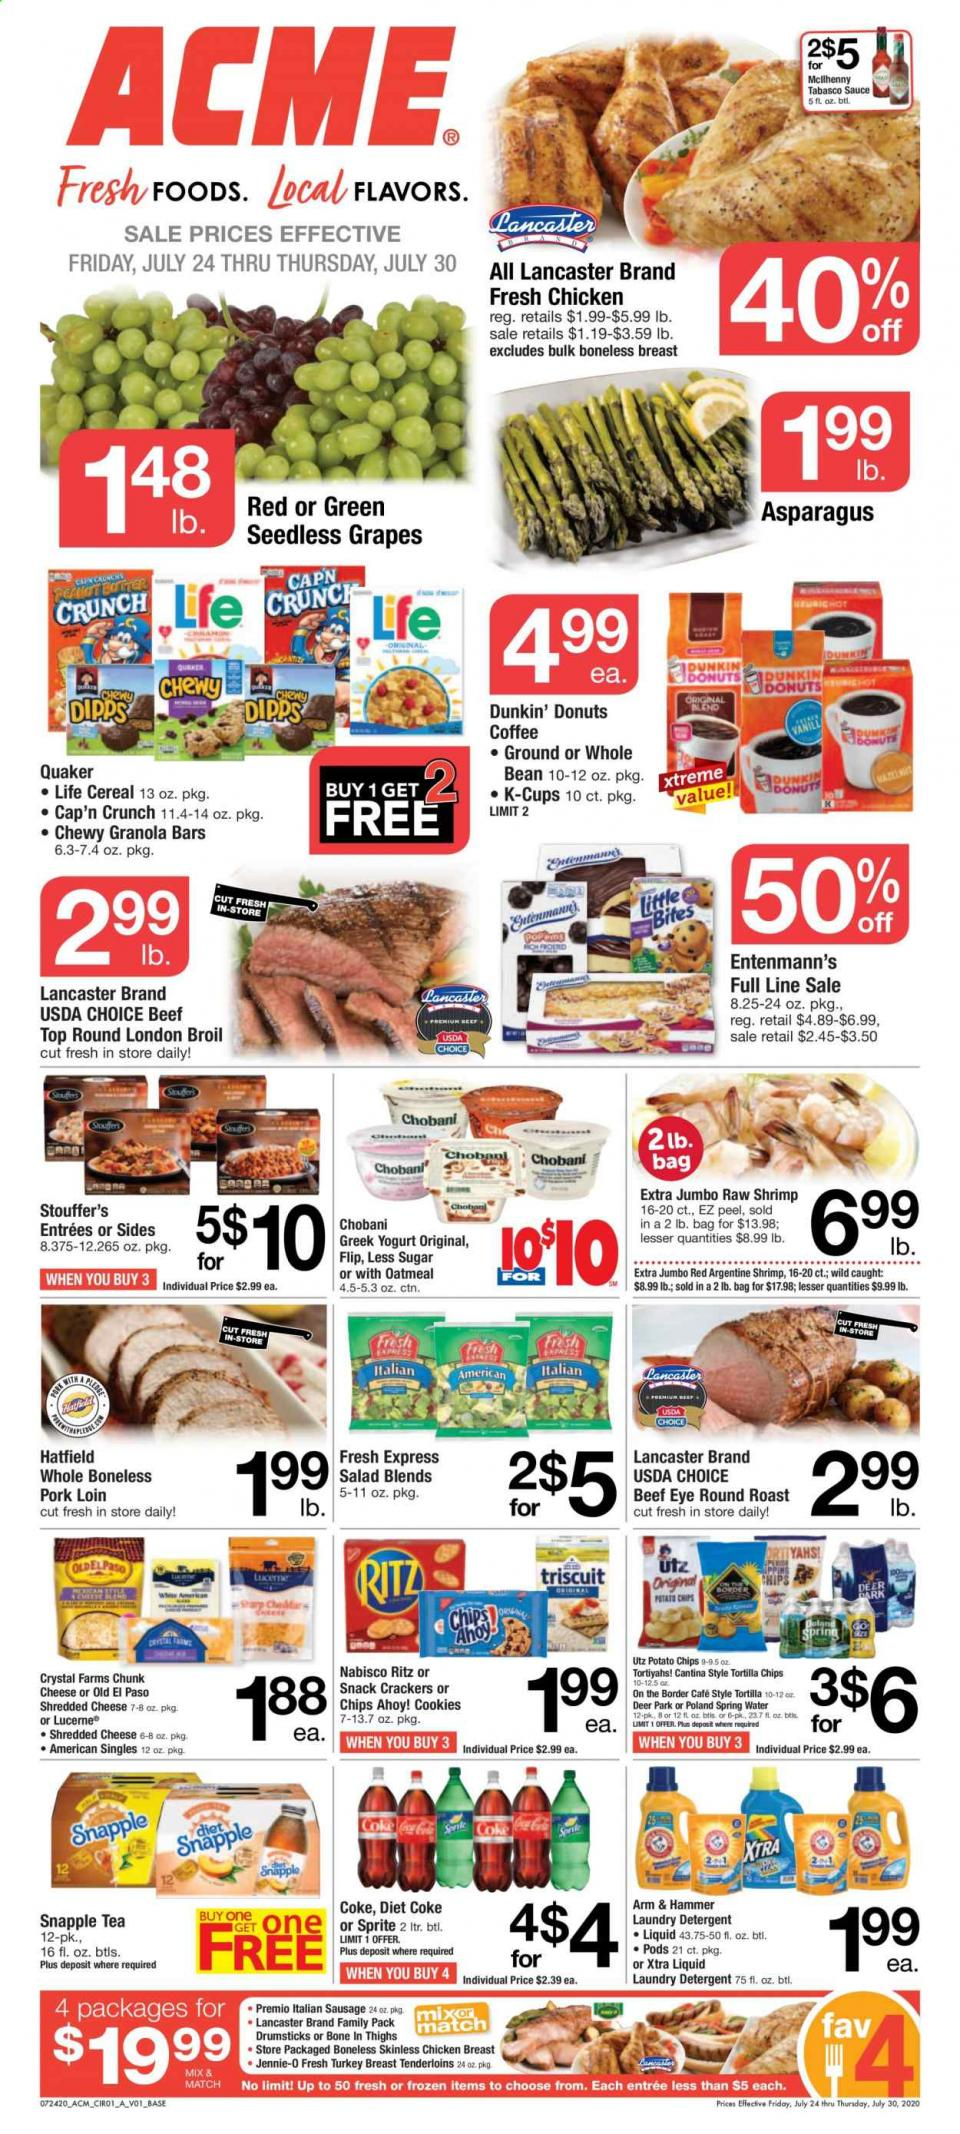 acme final july weekly ad valid from jul 24 30 2020